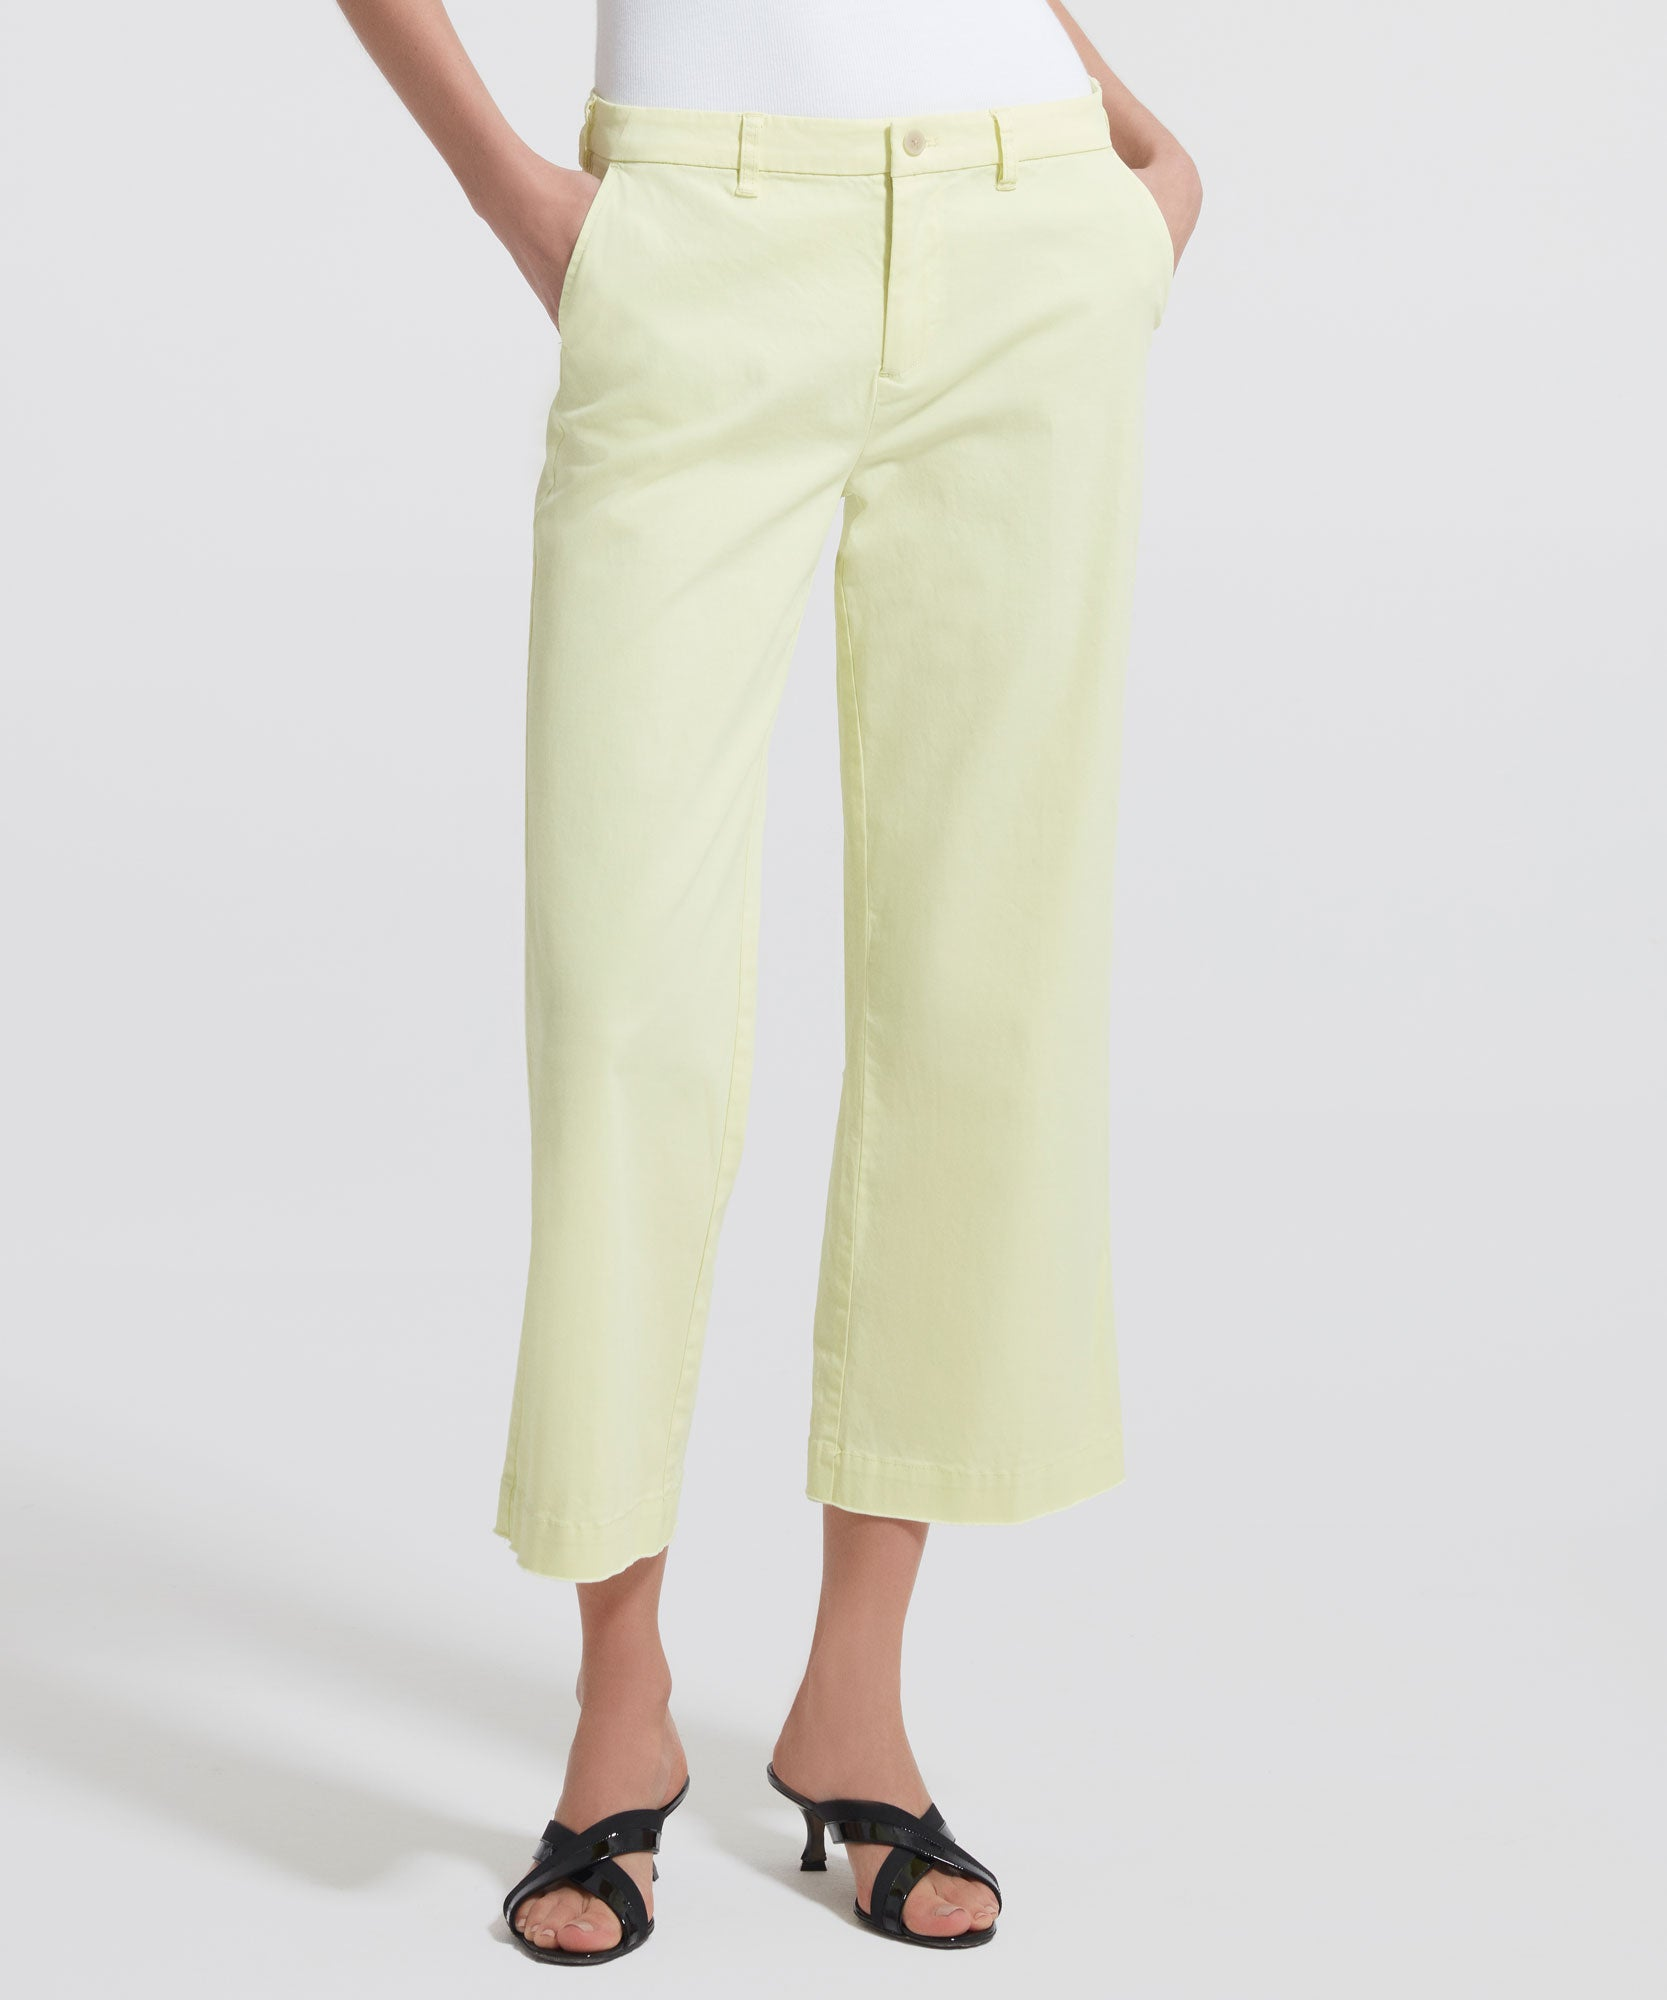 Lemon Cropped Boyfriend Garment Wash Pants - Women's Casual Pants by ATM Anthony Thomas Melillo